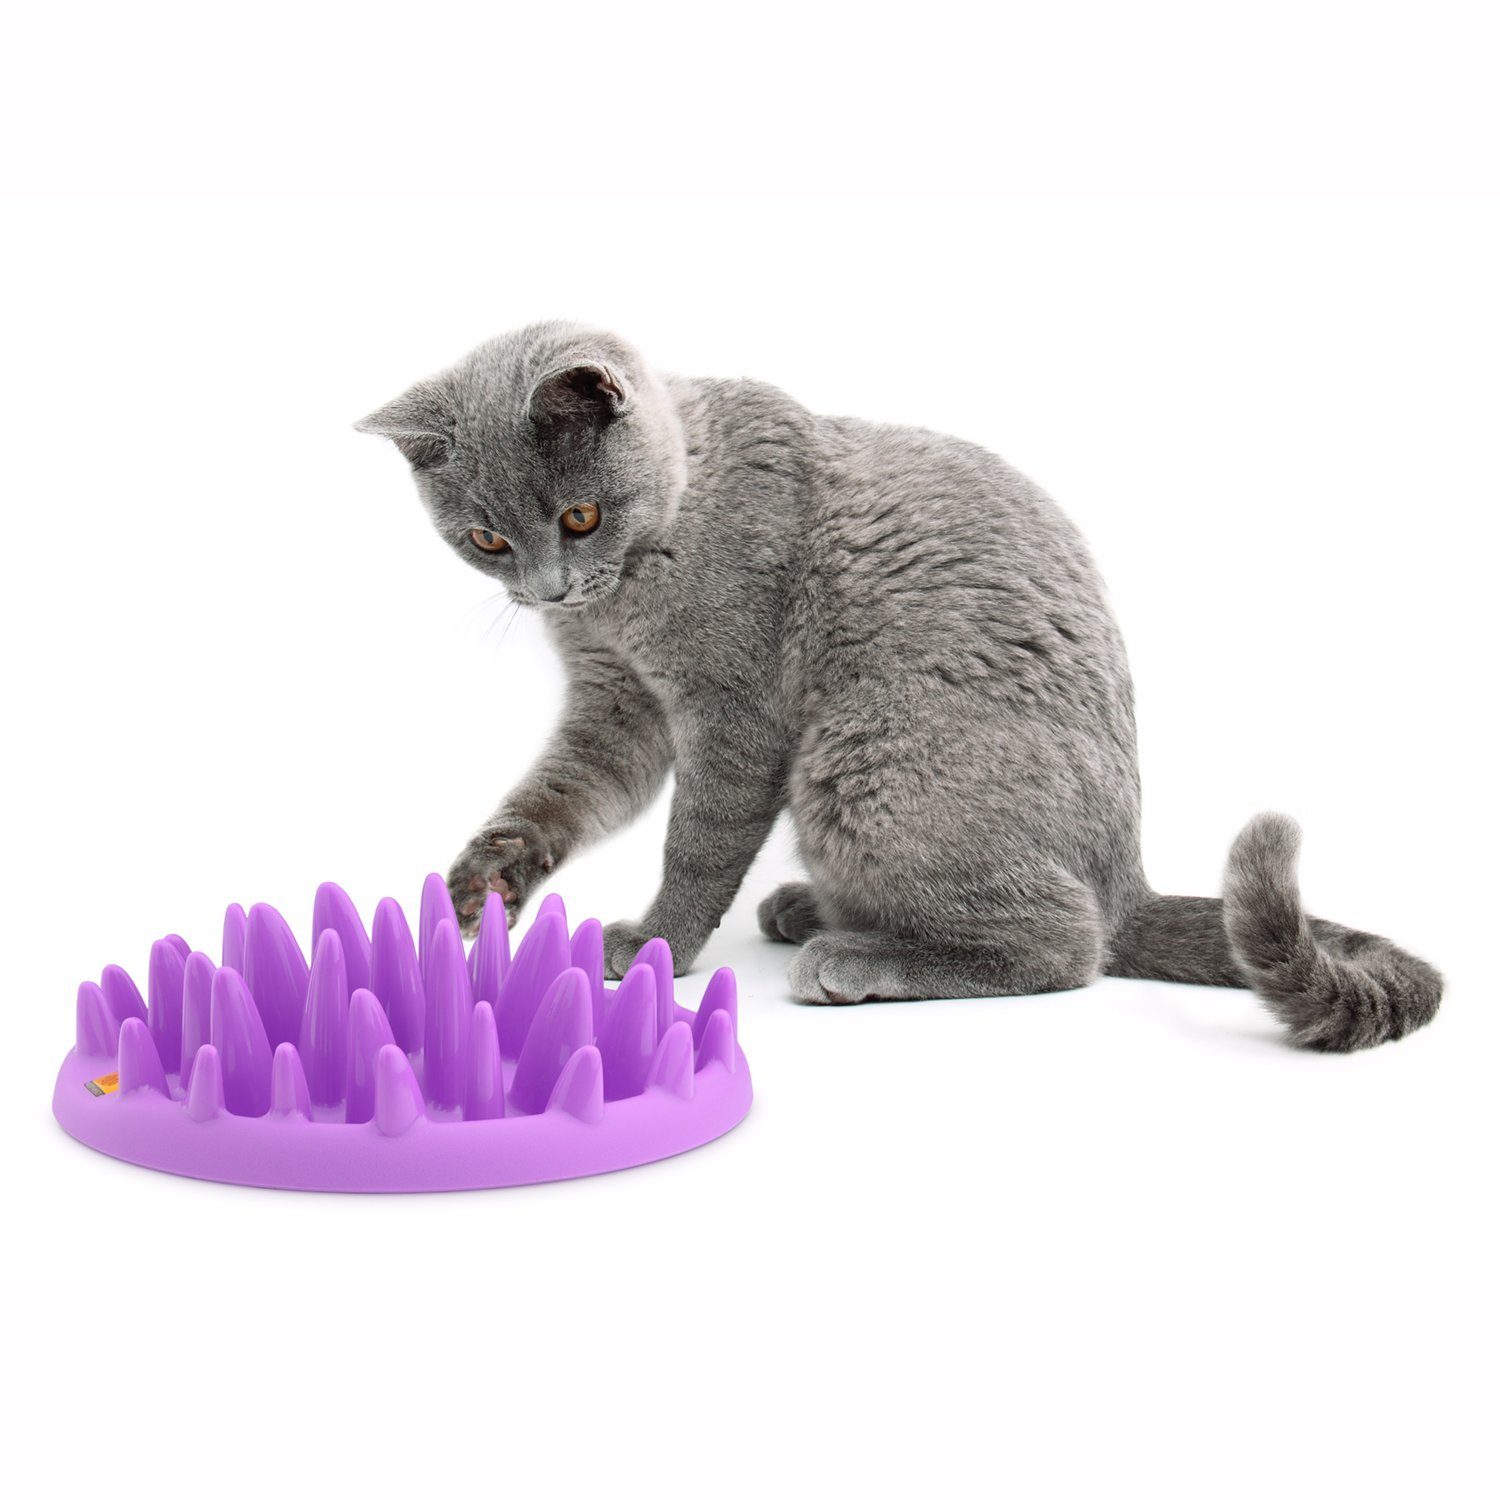 The Company of Animals Northmate Interactive Cat Feeder Slow Feed Bowl